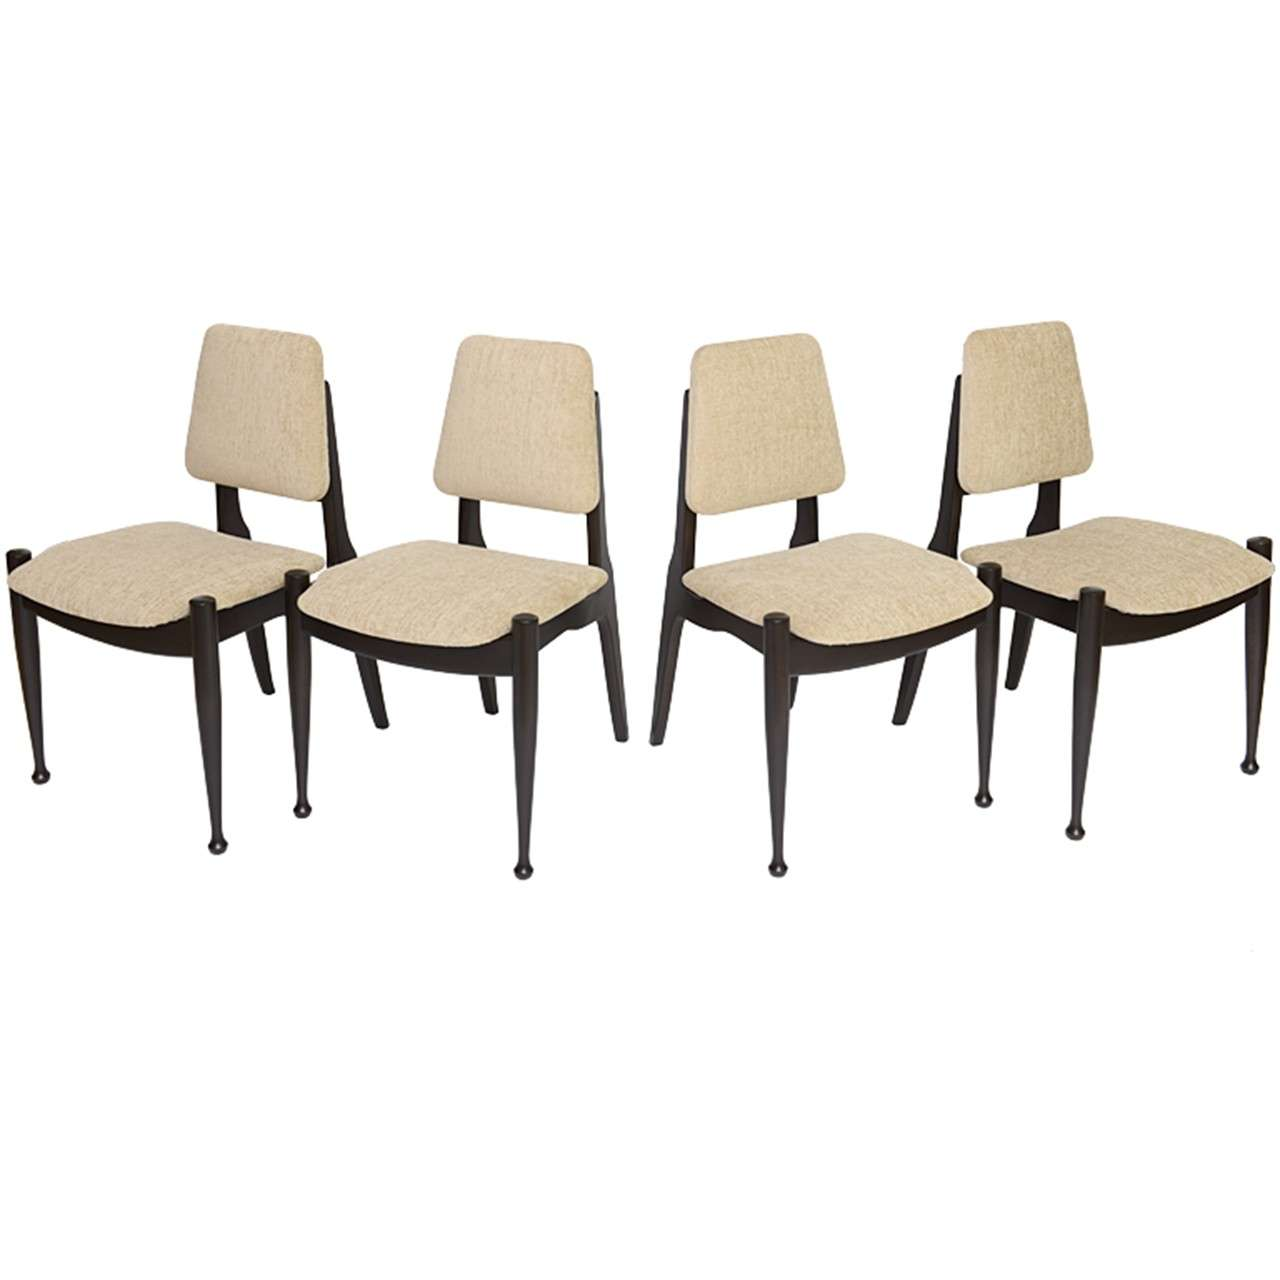 Four greta grossman style ebonized 50s modern dining for Dining room chairs 50